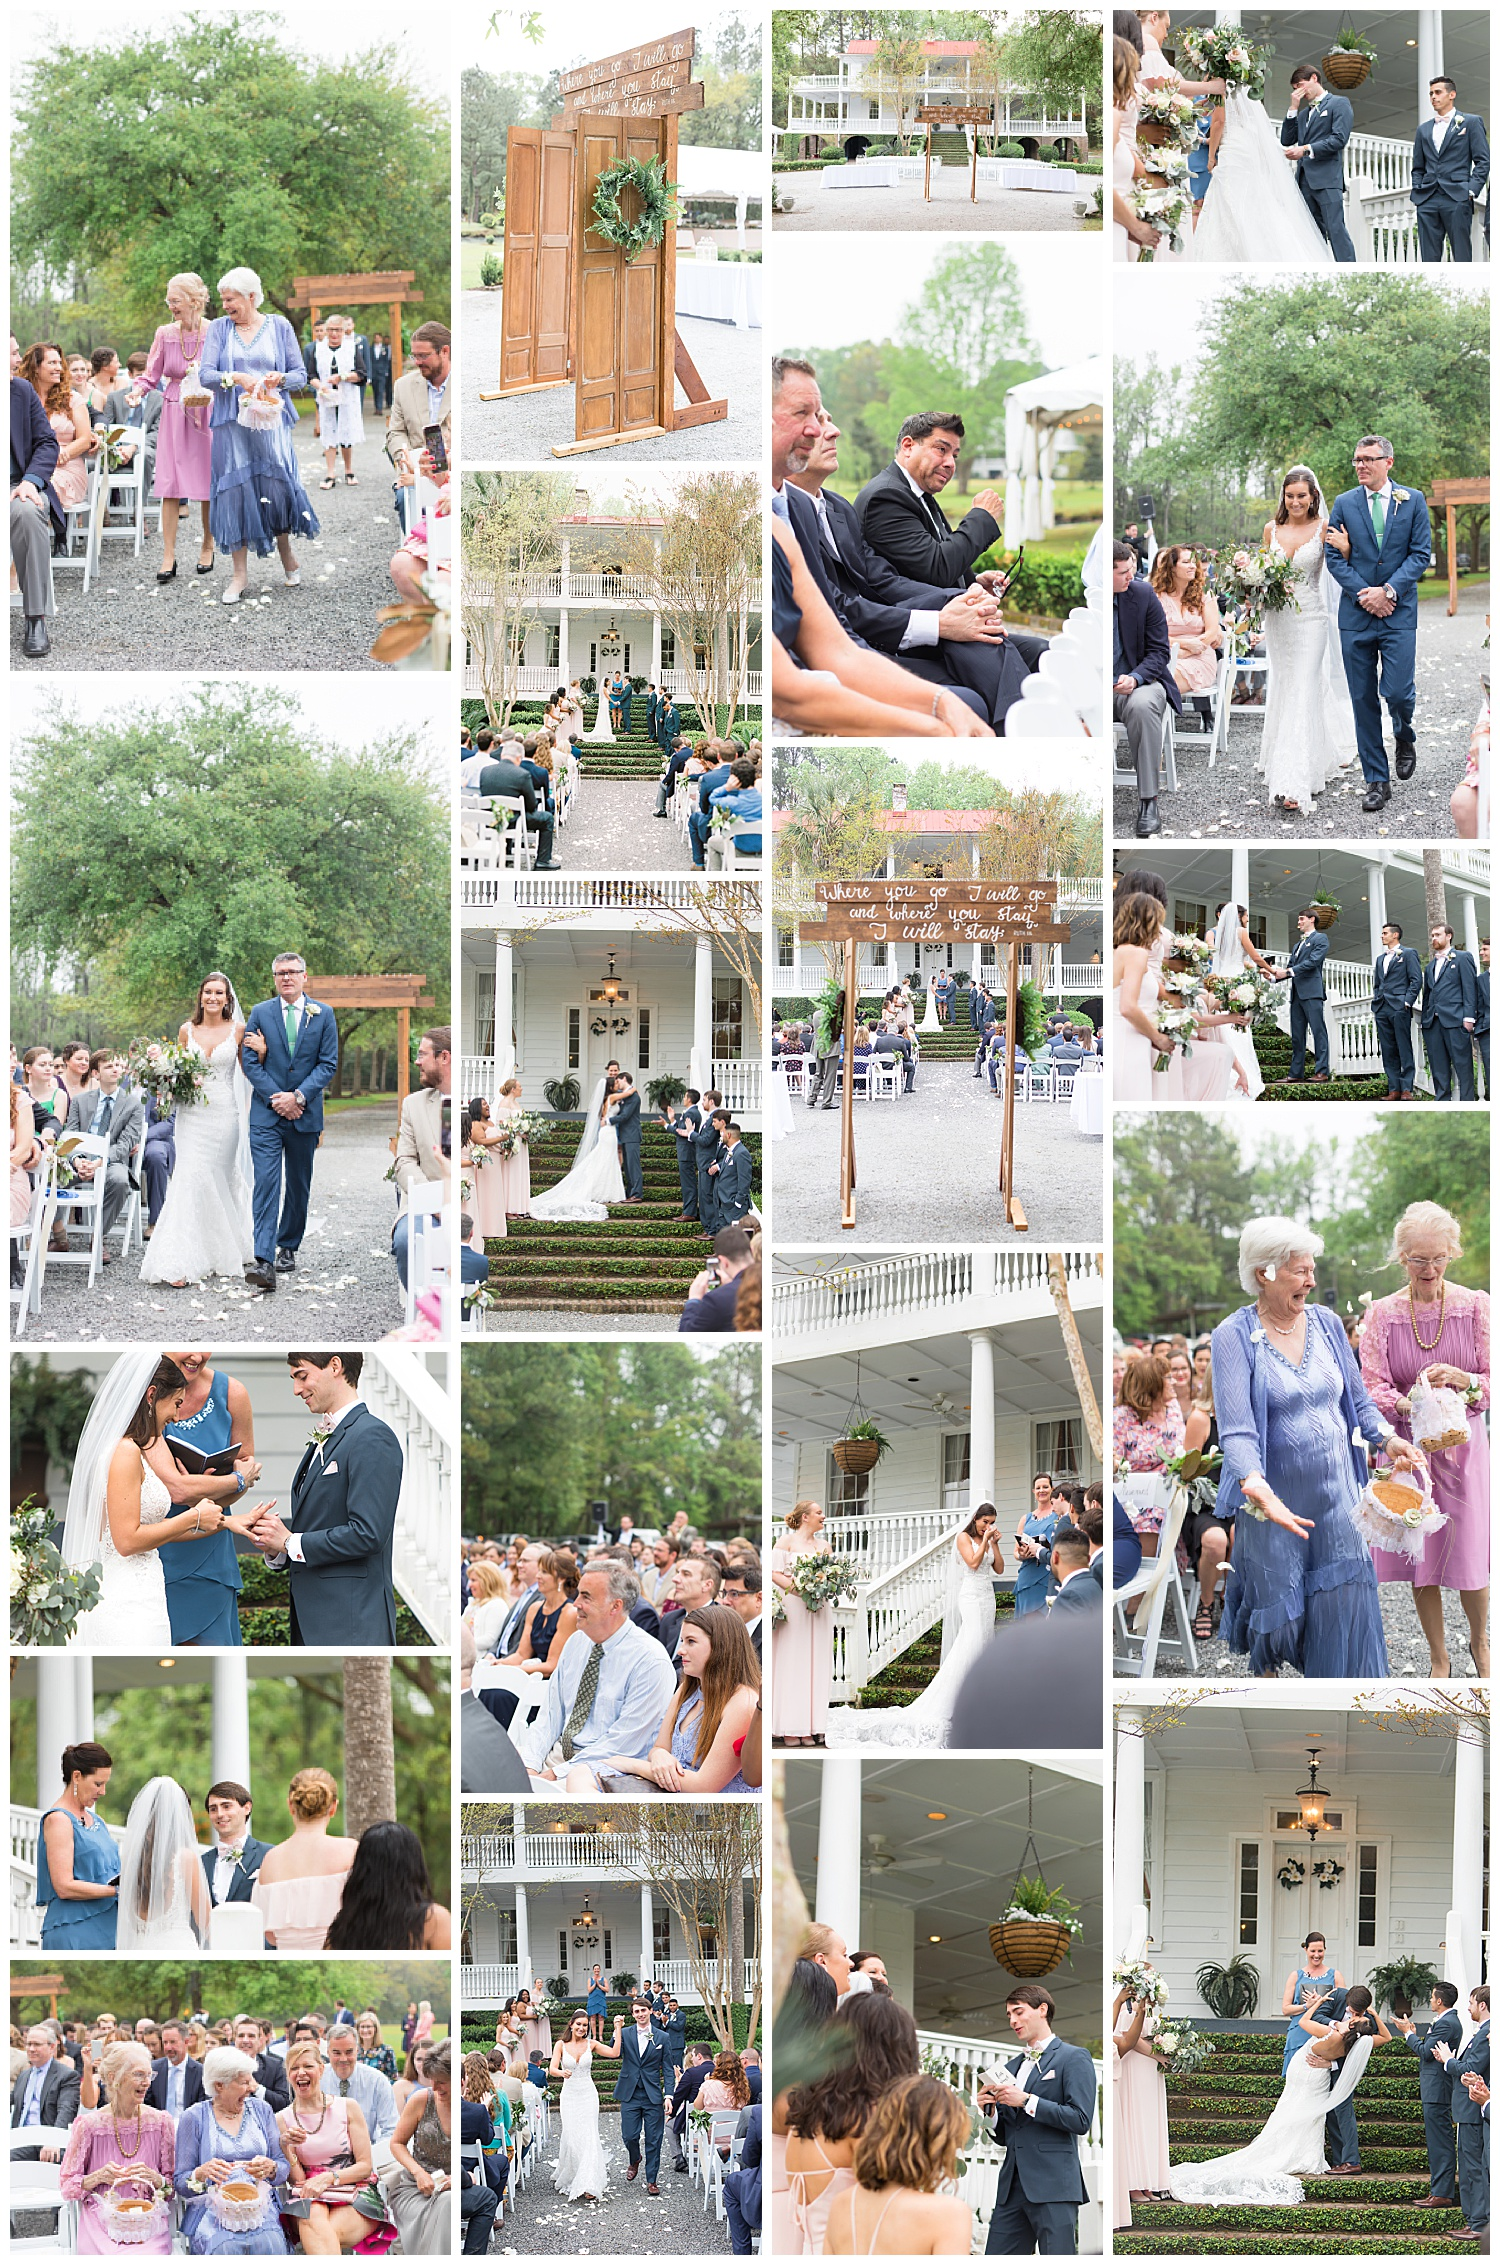 outdoor-charleston-plantation-photographer-old-wide-awake-kailee-dimeglio-photography-ceremony-ivy-steps.jpg